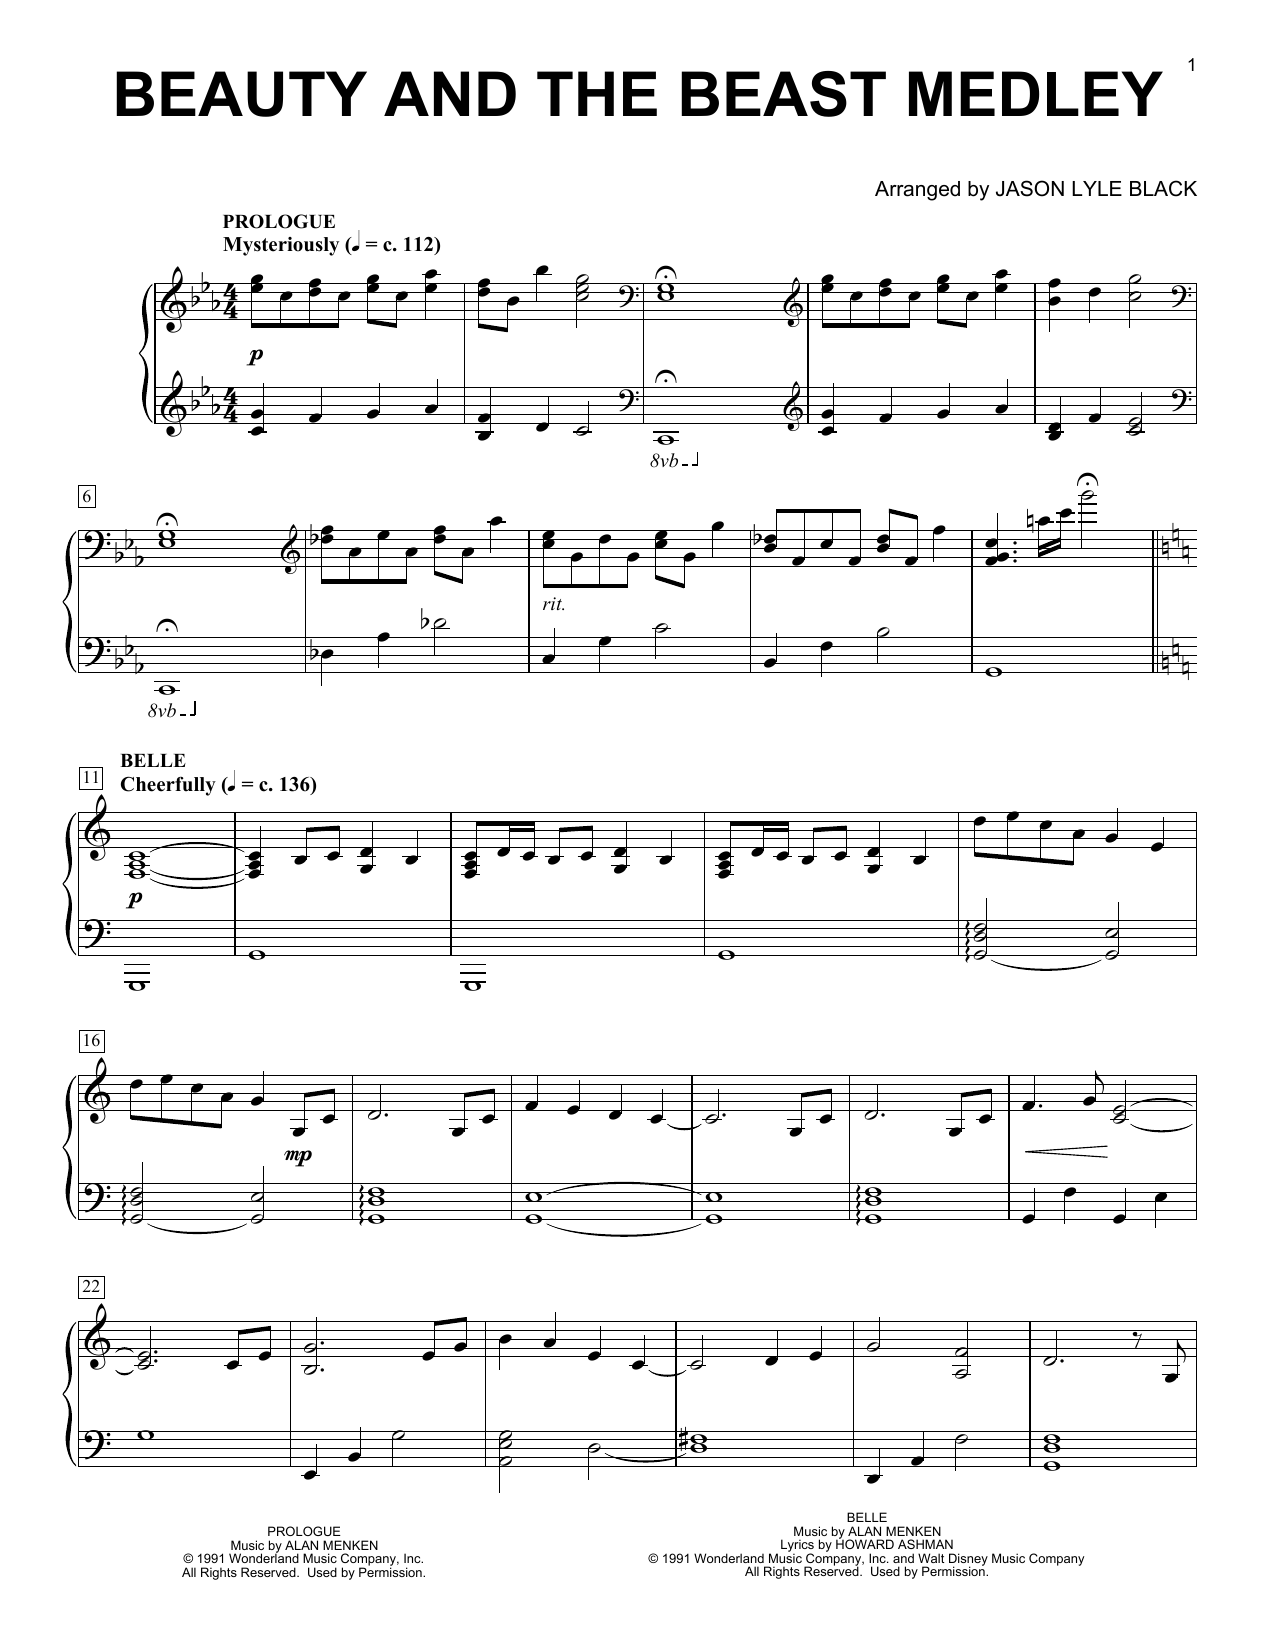 Alan Menken & Howard Ashman Beauty And The Beast Medley (arr. Jason Lyle Black) sheet music notes and chords. Download Printable PDF.